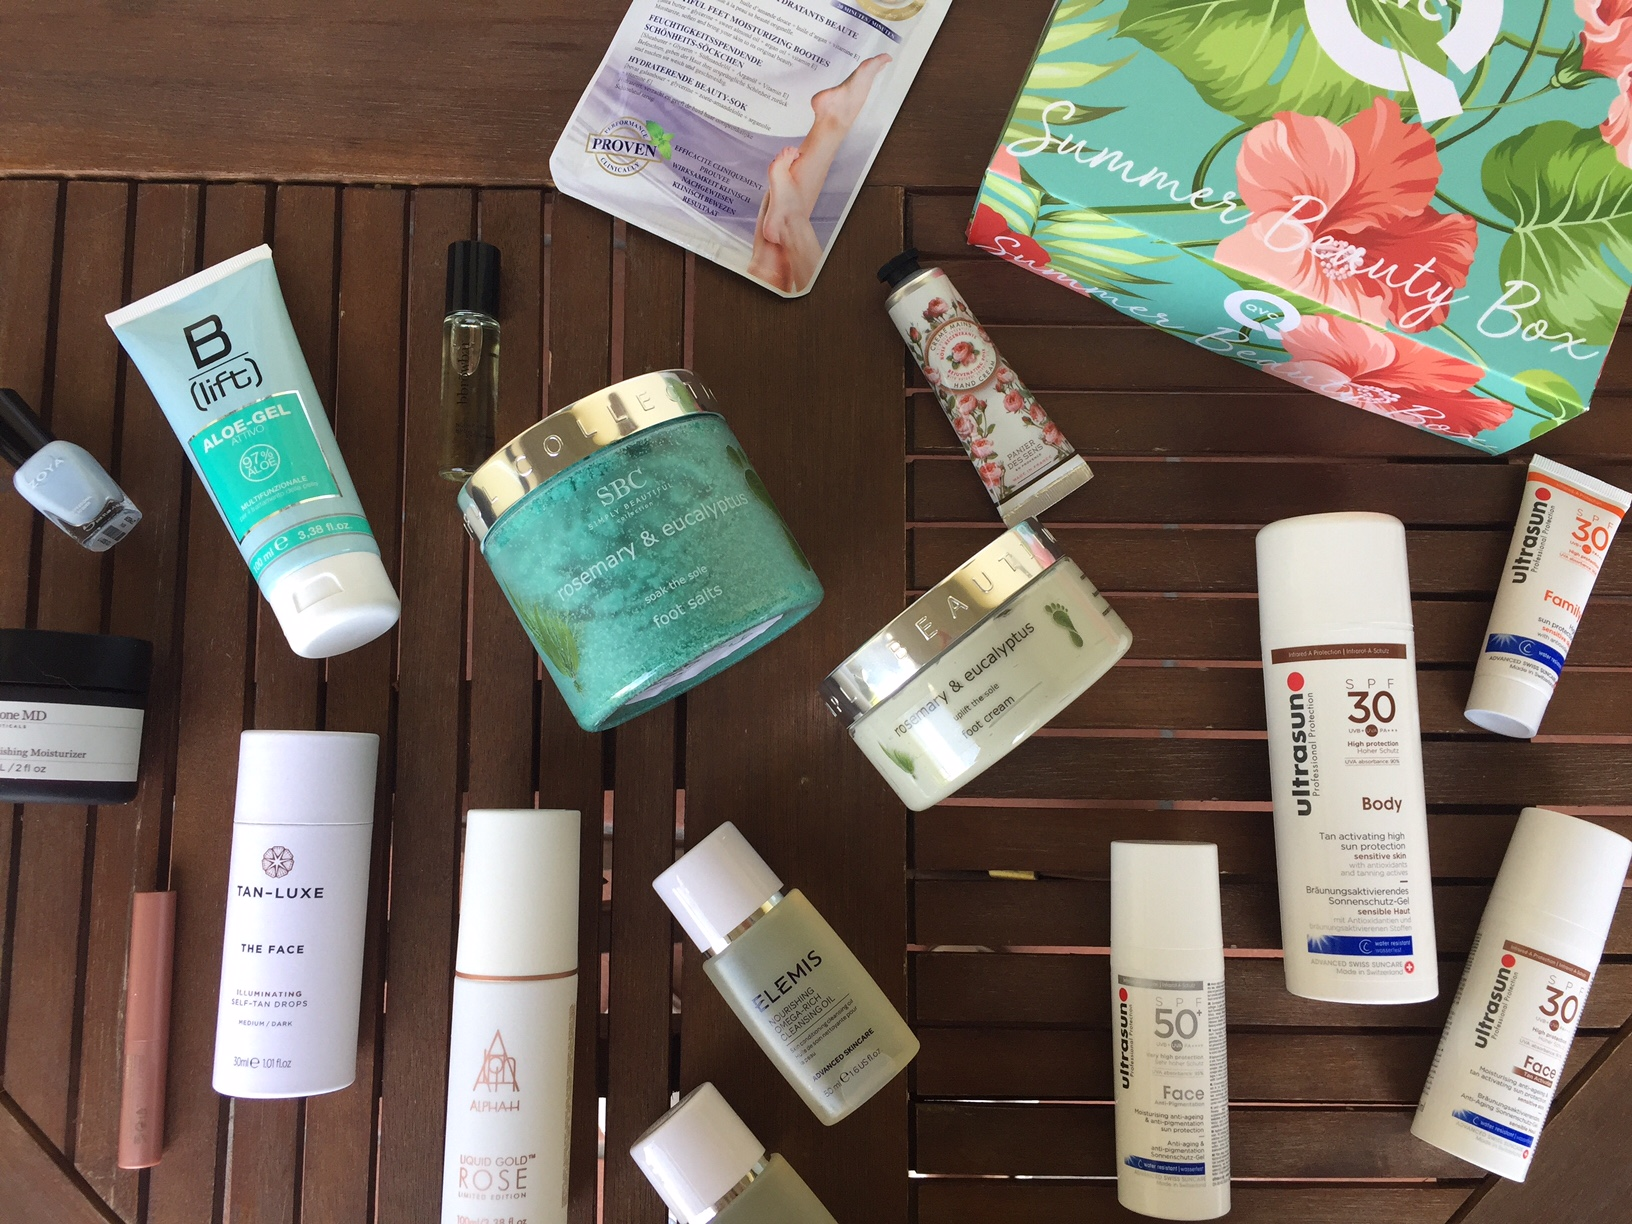 Summer Beauty Box di QVC per conquistare l'estate bellissime e in forma